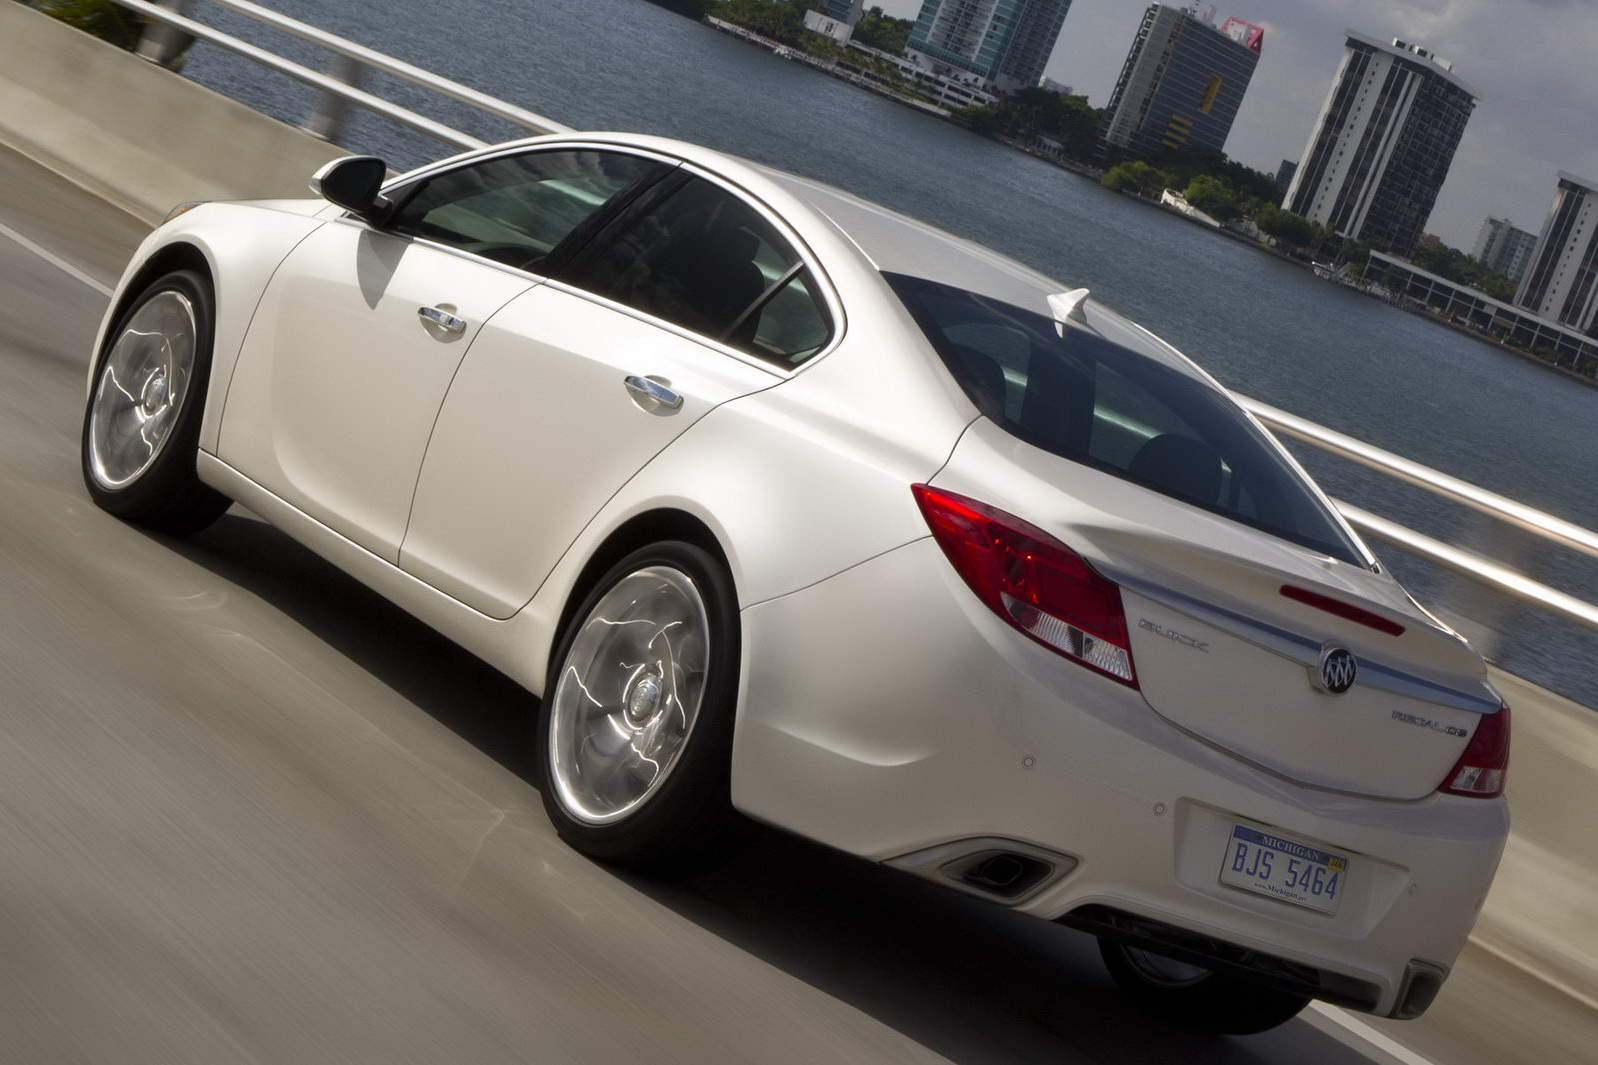 2012 Buick Regal GS 15 2012 Buick Regal GS Generates 270HP